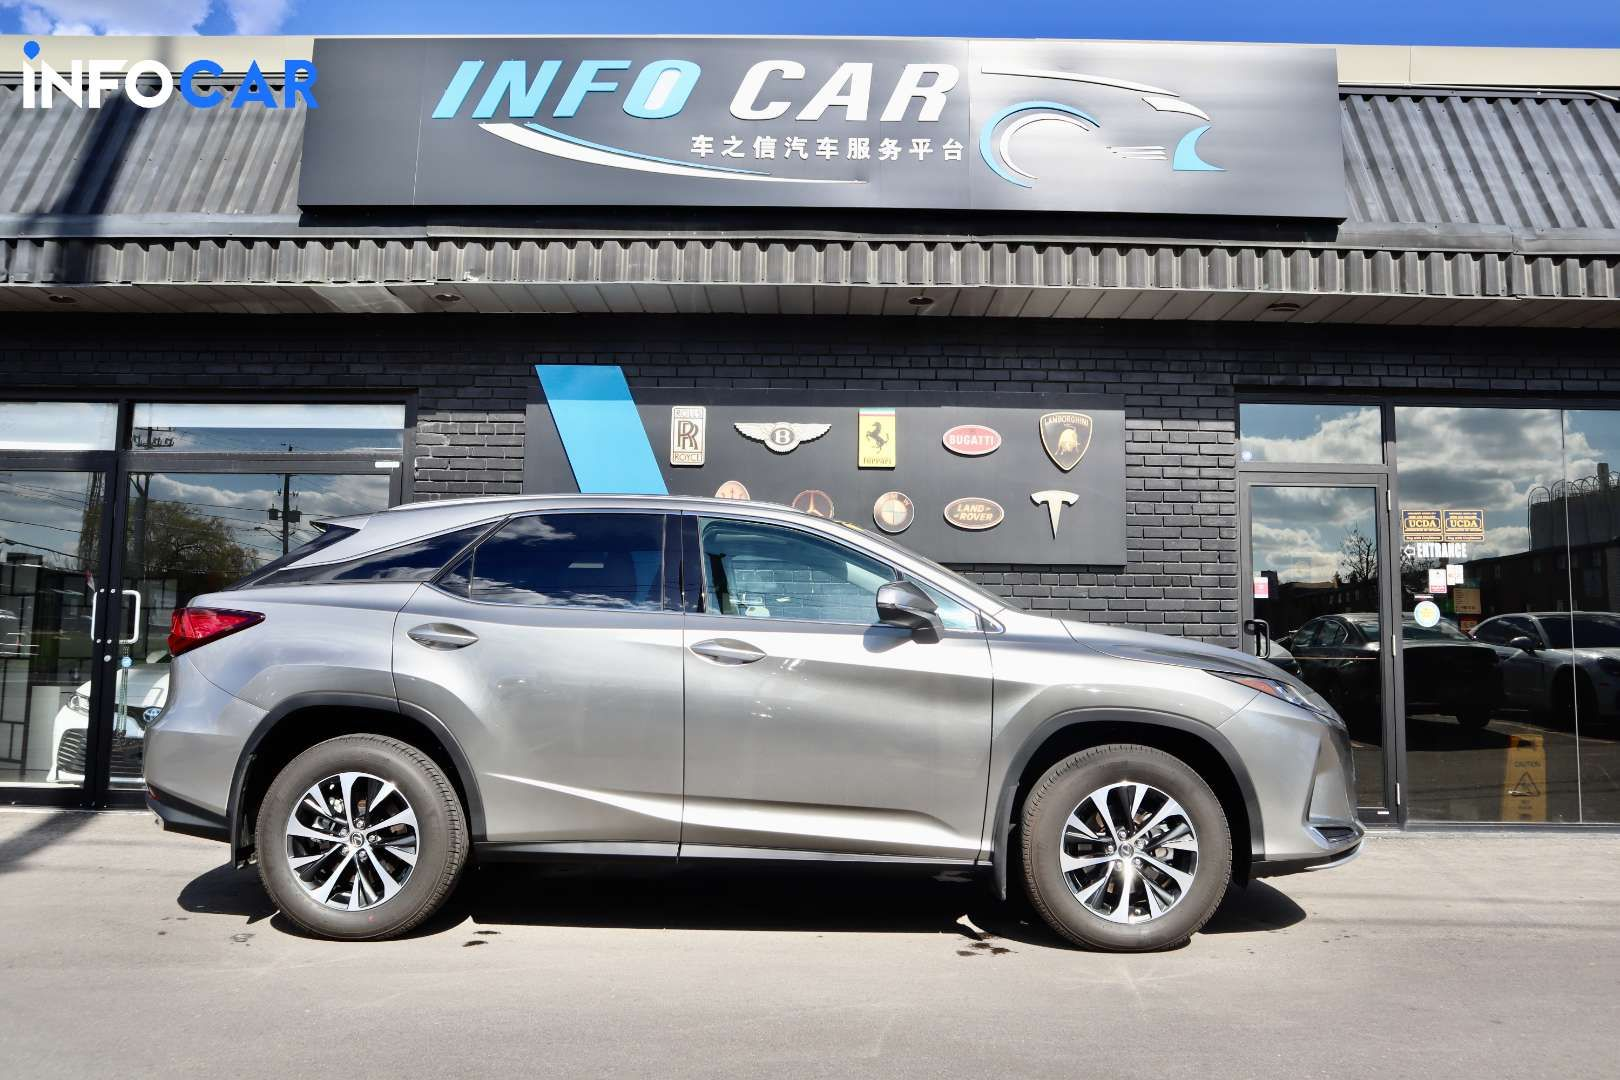 2020 Lexus RX 350 null - INFOCAR - Toronto's Most Comprehensive New and Used Auto Trading Platform